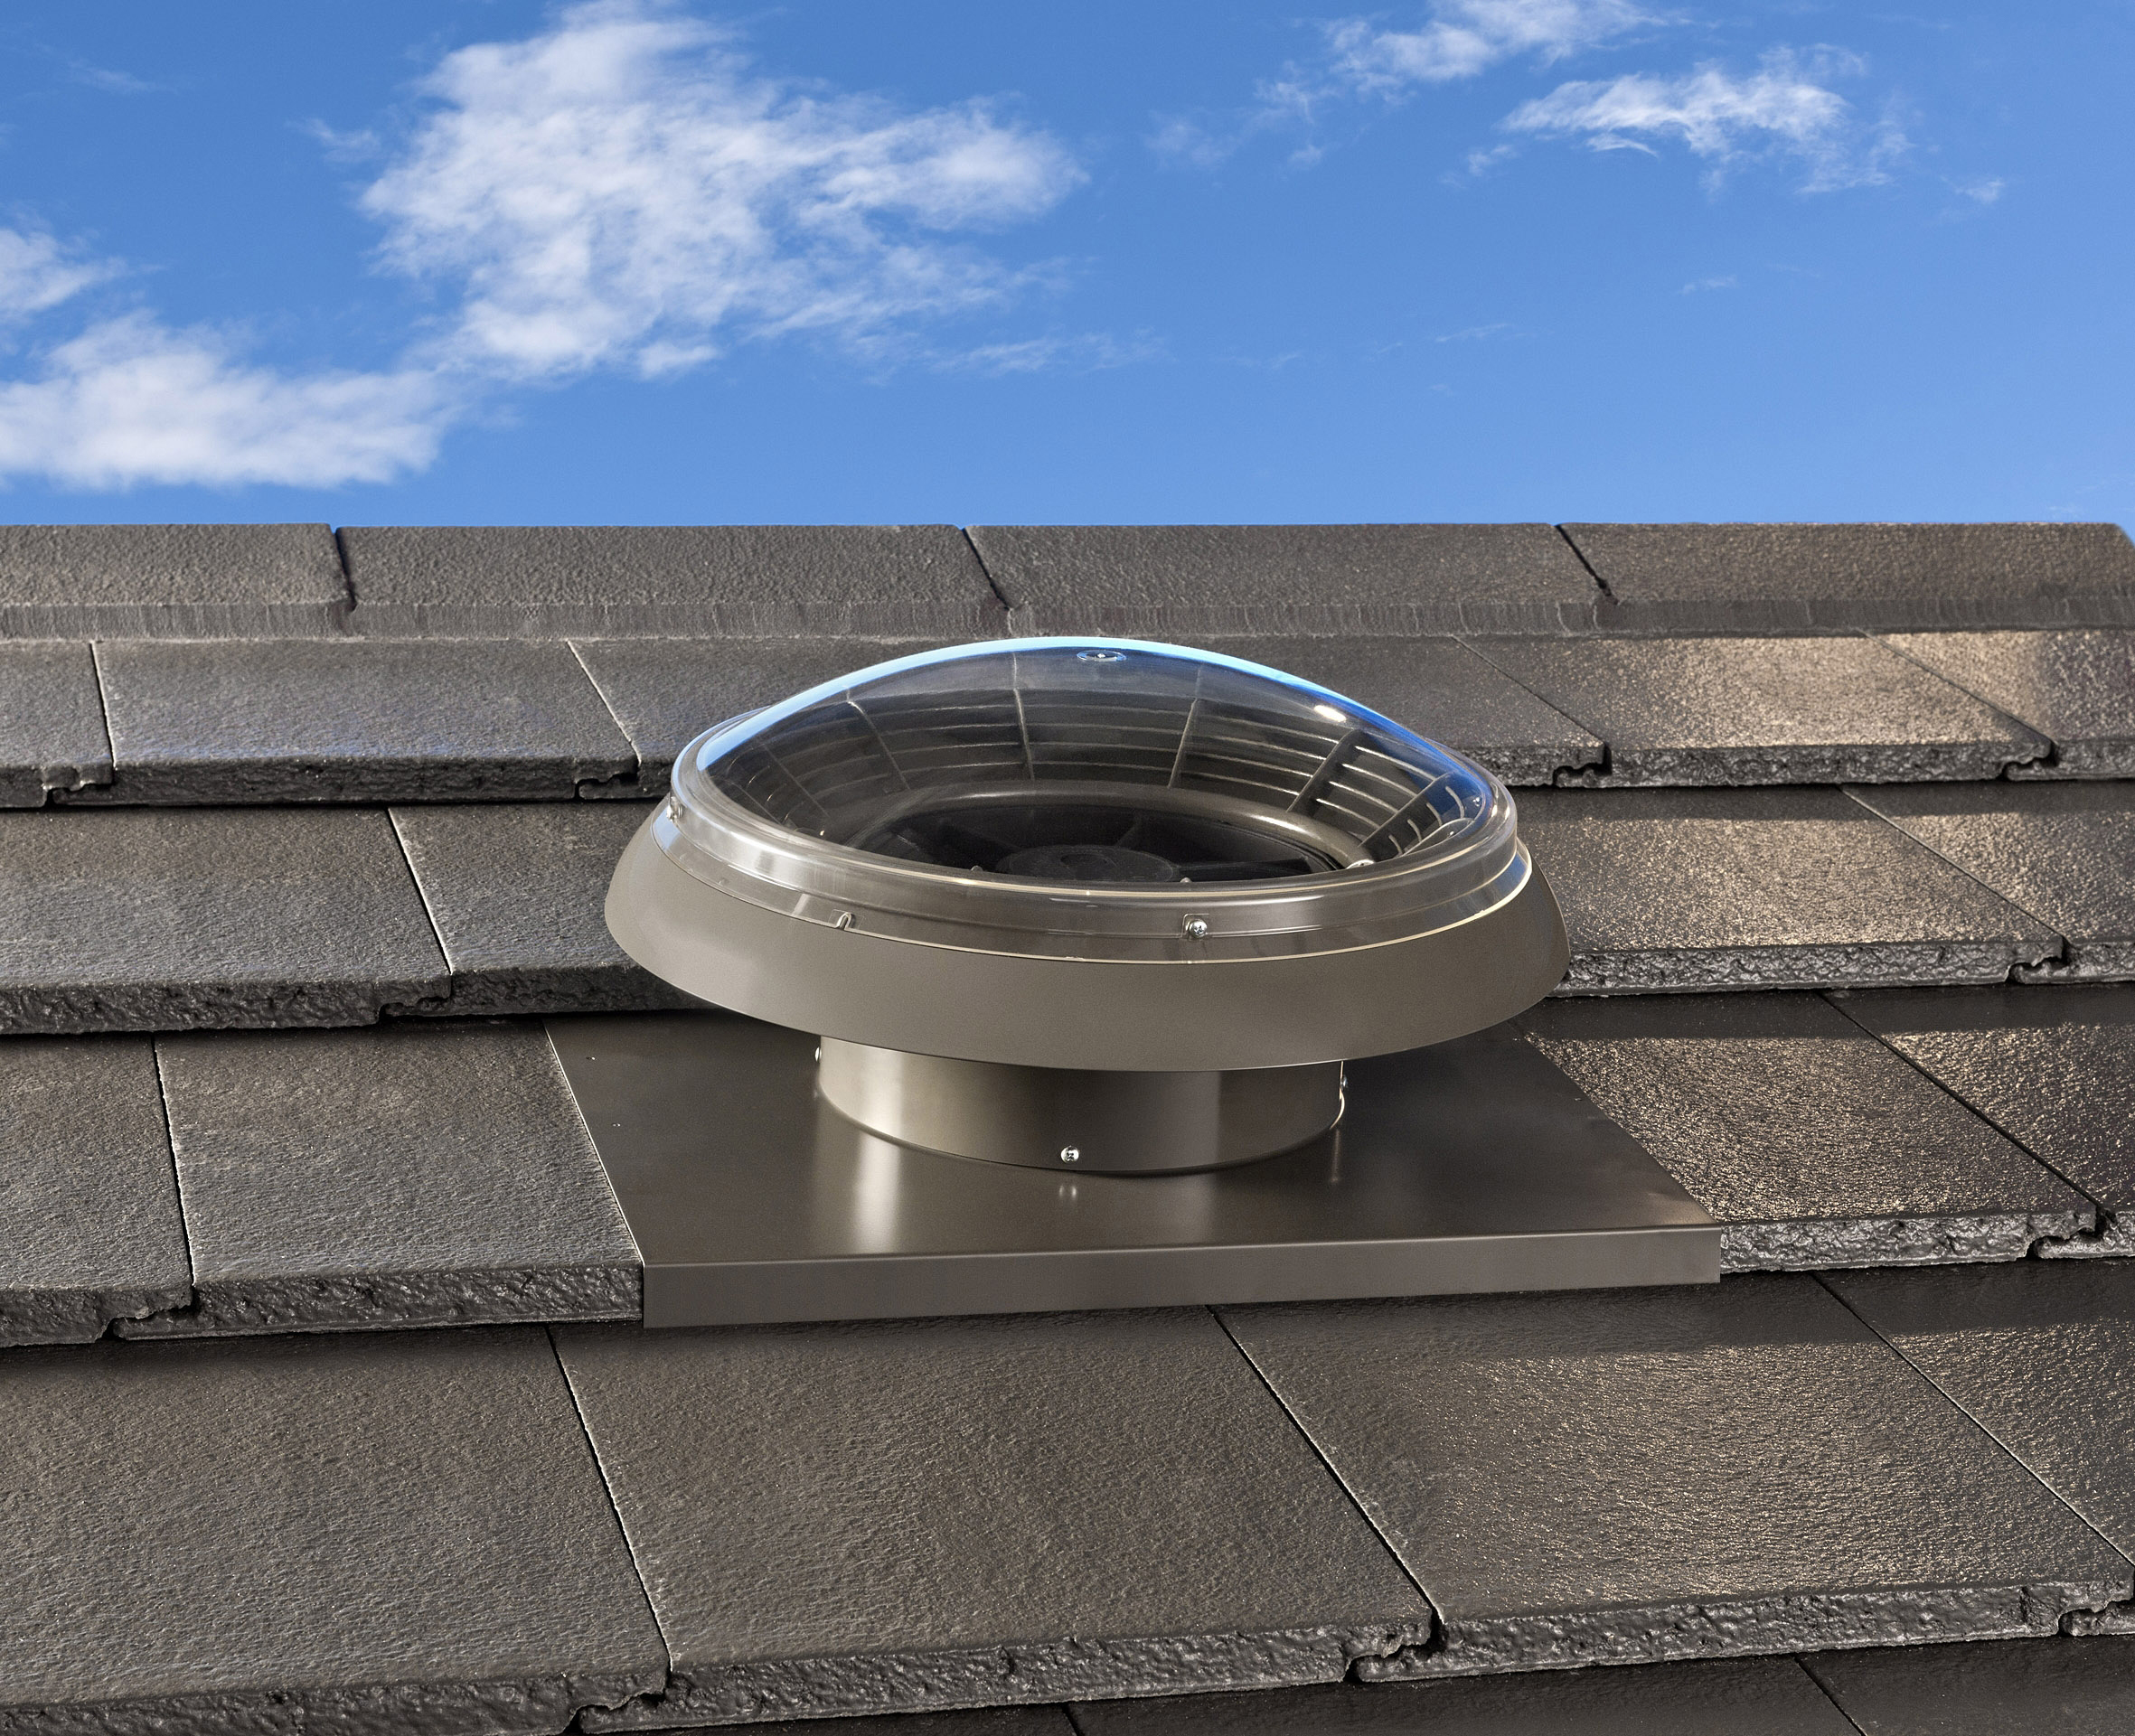 Bradford Ventilation – AiroMatic roof vent